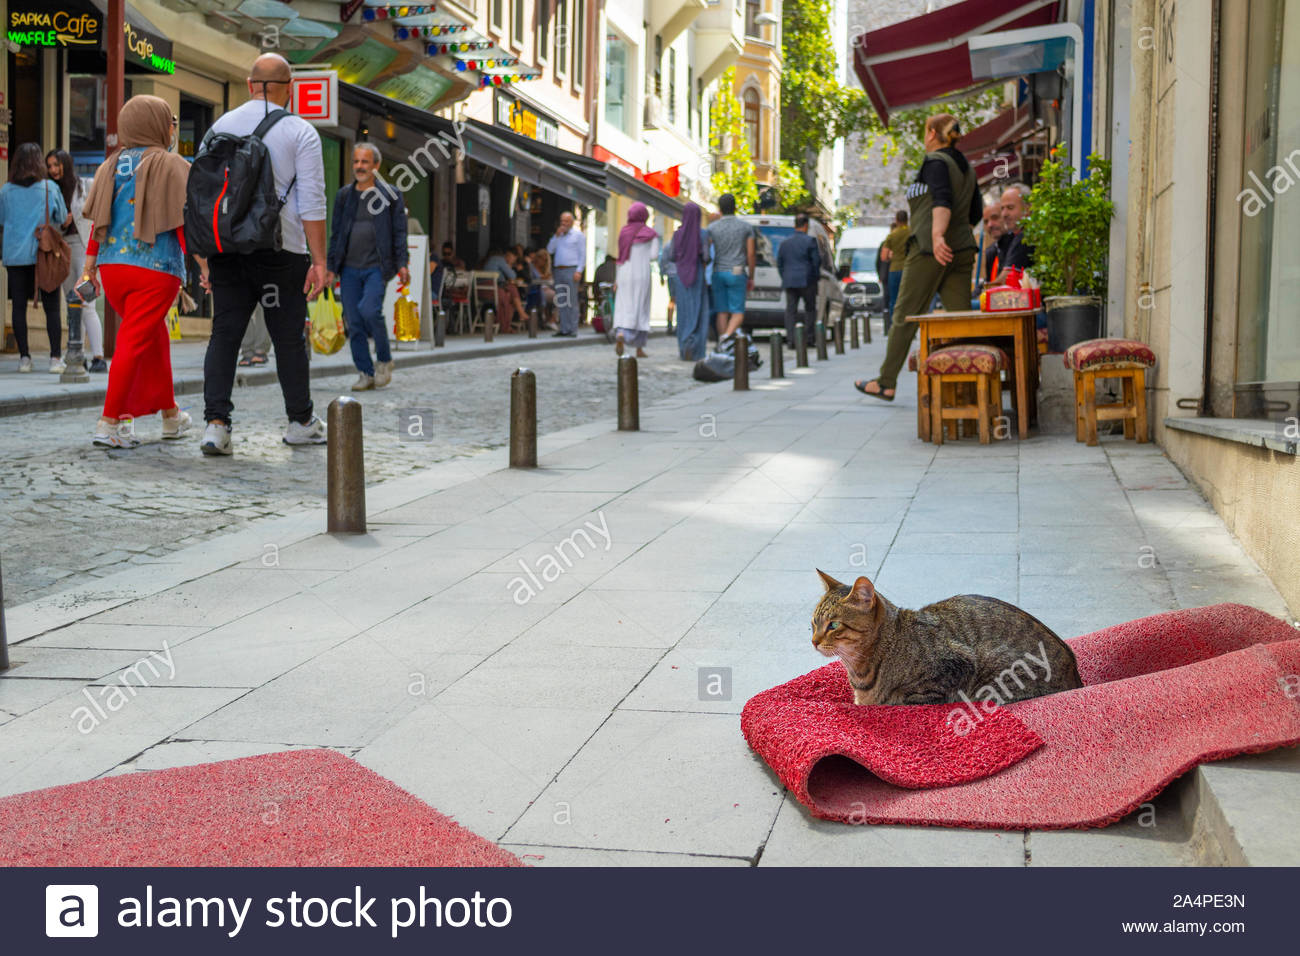 A stray tabby cat sits on a crumpled rug outside a shop in the Galata Karakoy district of Istanbul Turkey as tourists and Turks pass by on the street Stock Photo